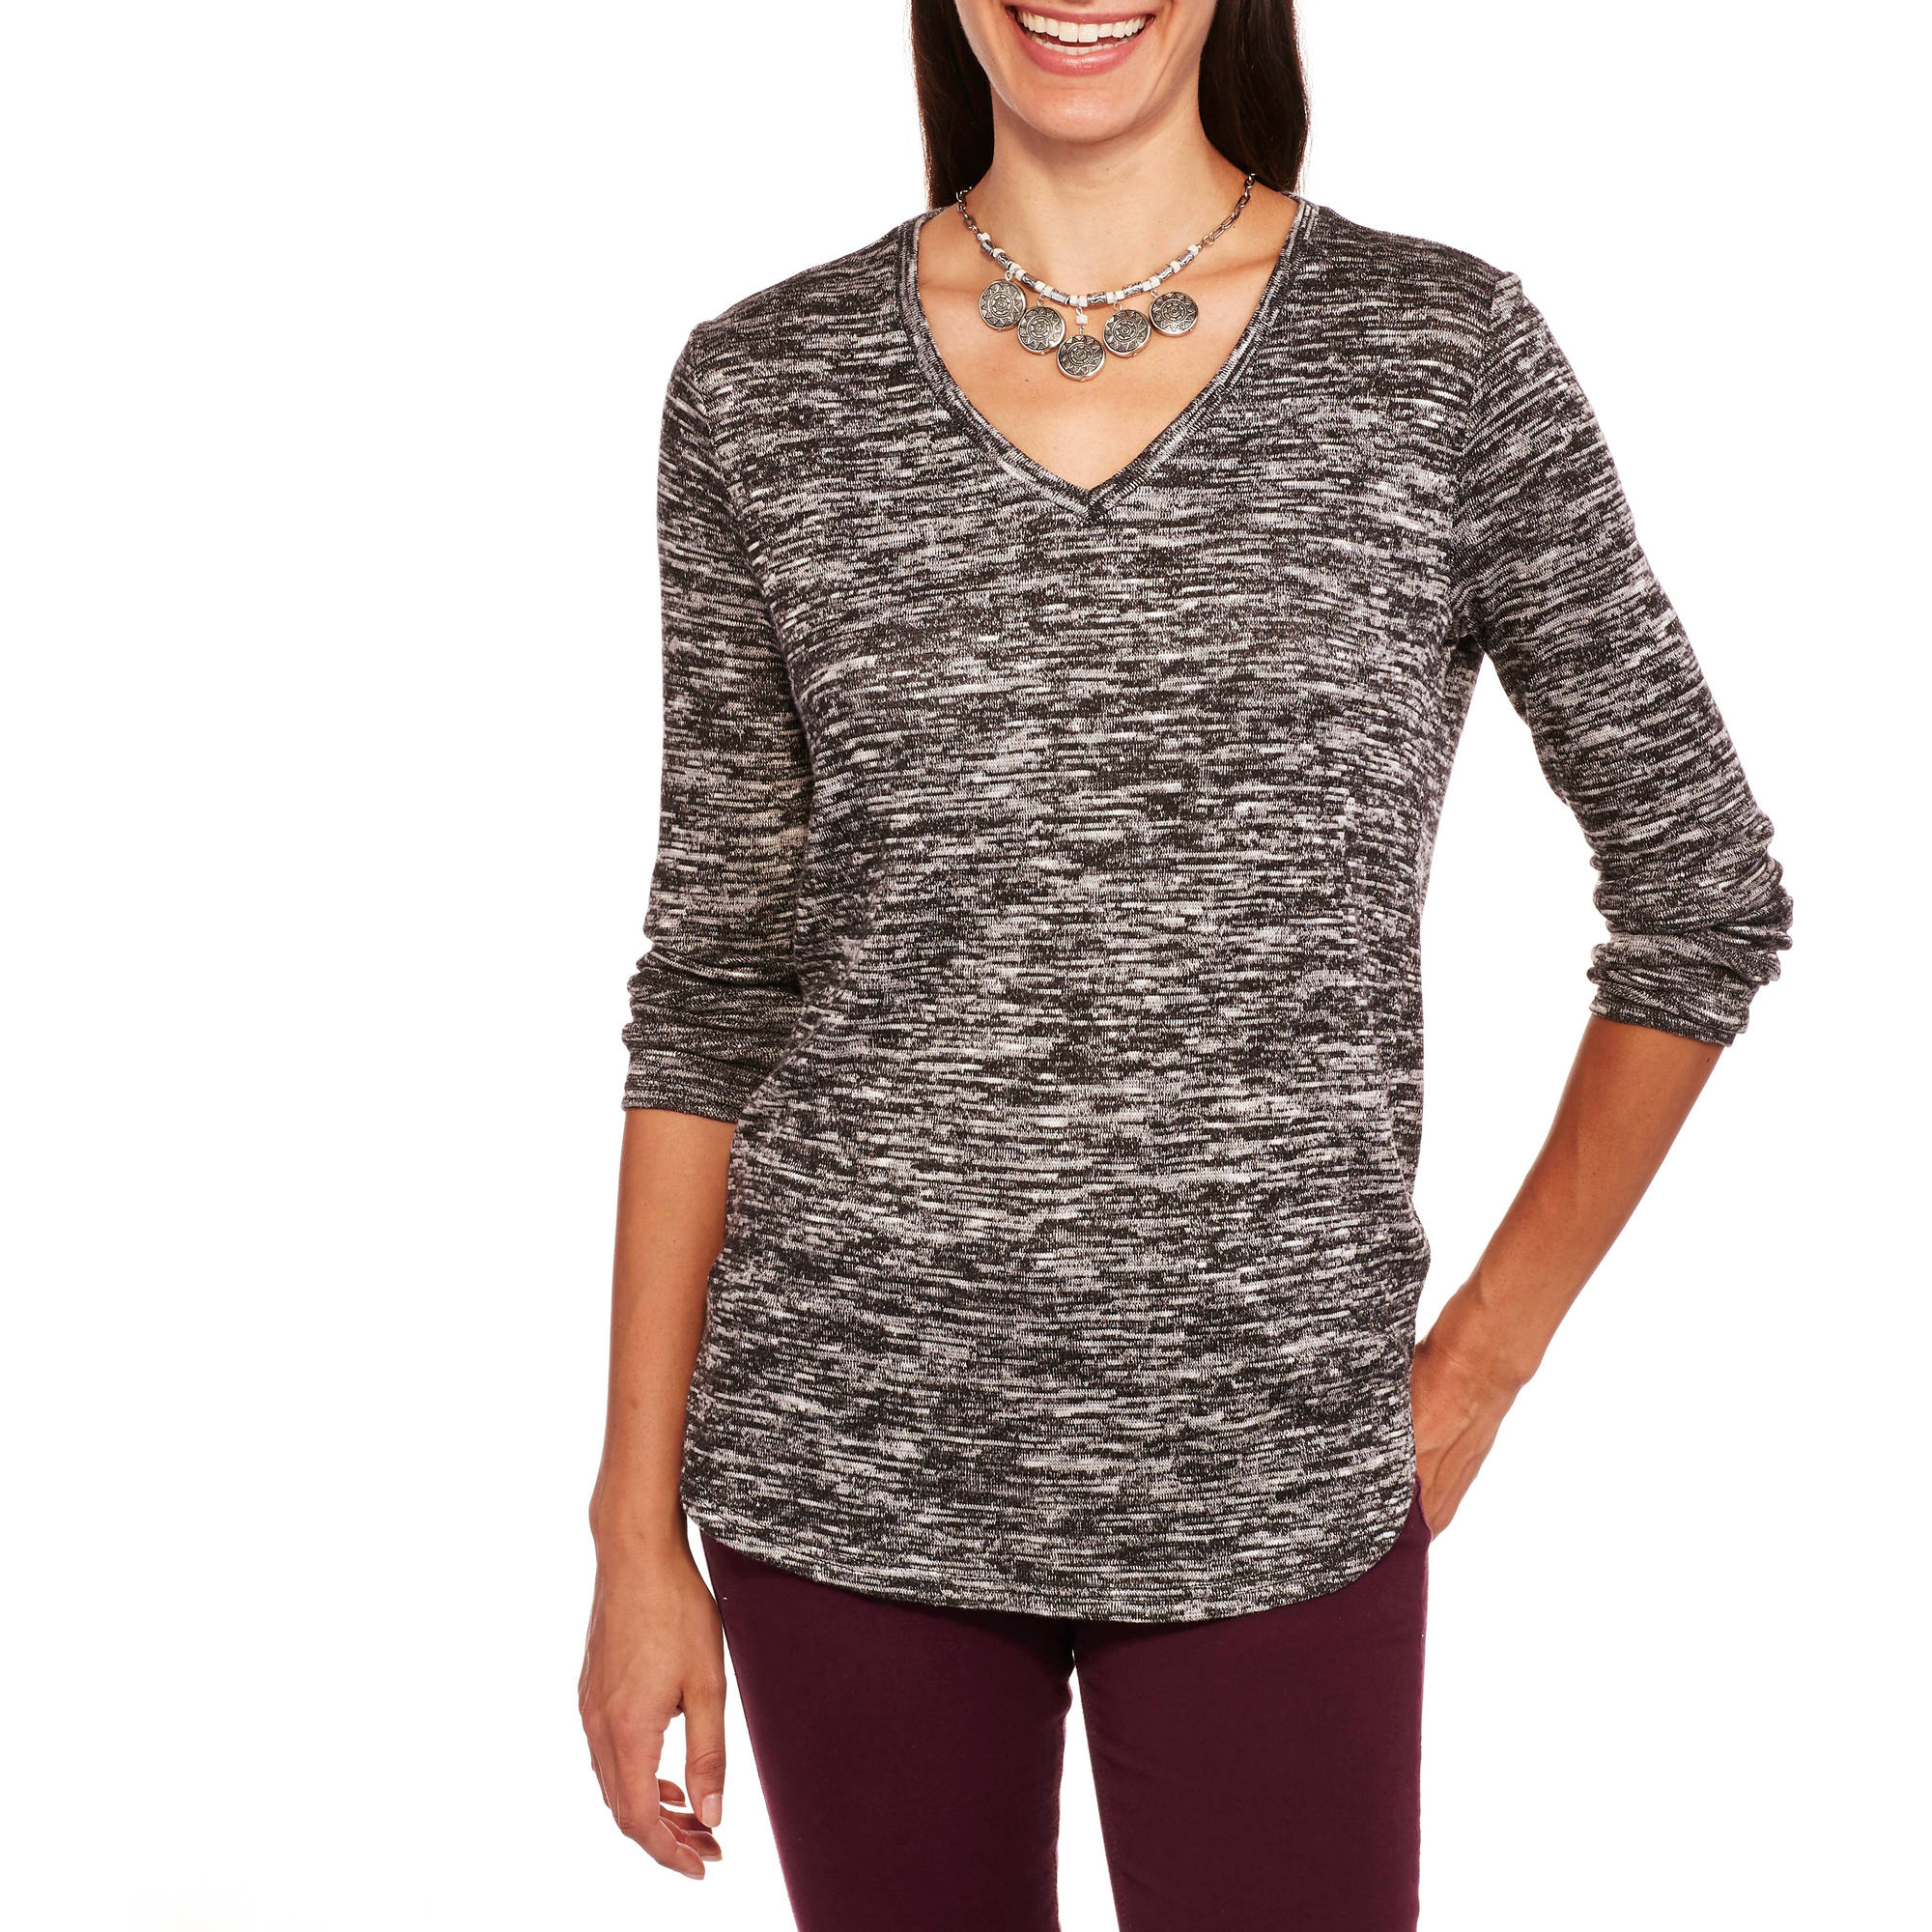 Faded Glory Women's Textured Hi-Lo V-Neck Top